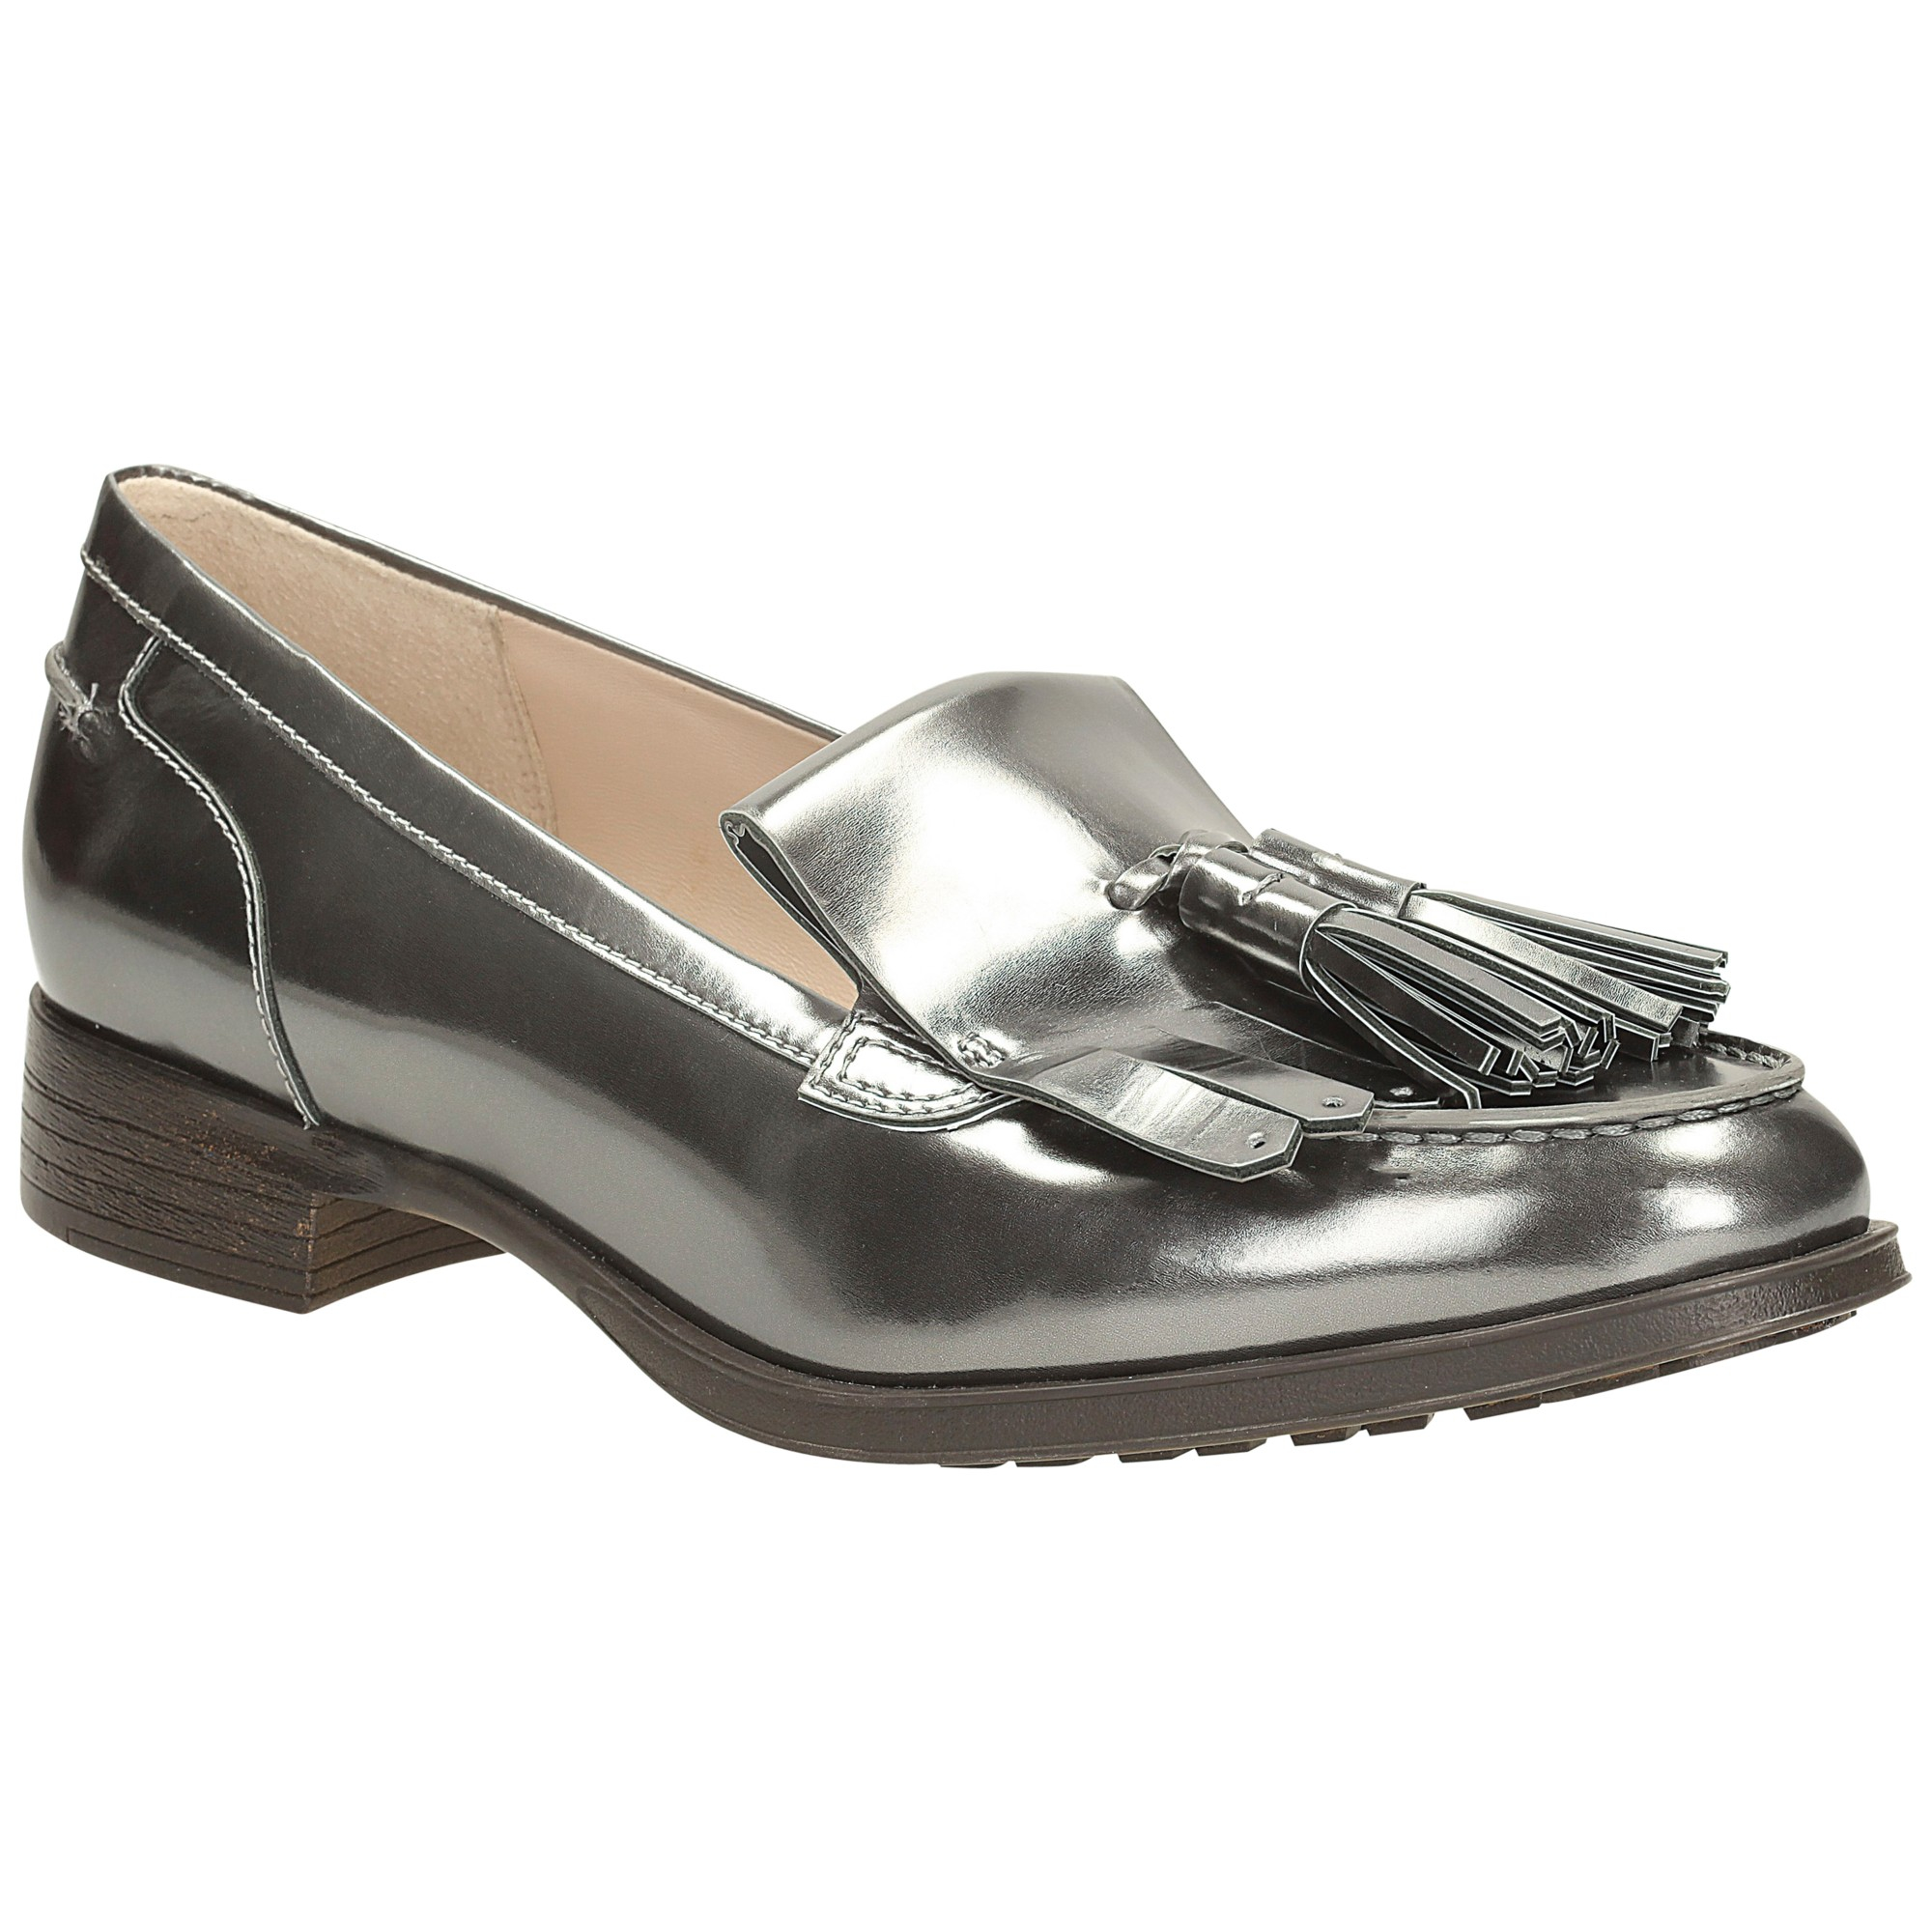 WOMENS GIRLS NEW FLAT PEWTER LOAFERS BROGUE TASTLE SLIP ON SHOES SIZE